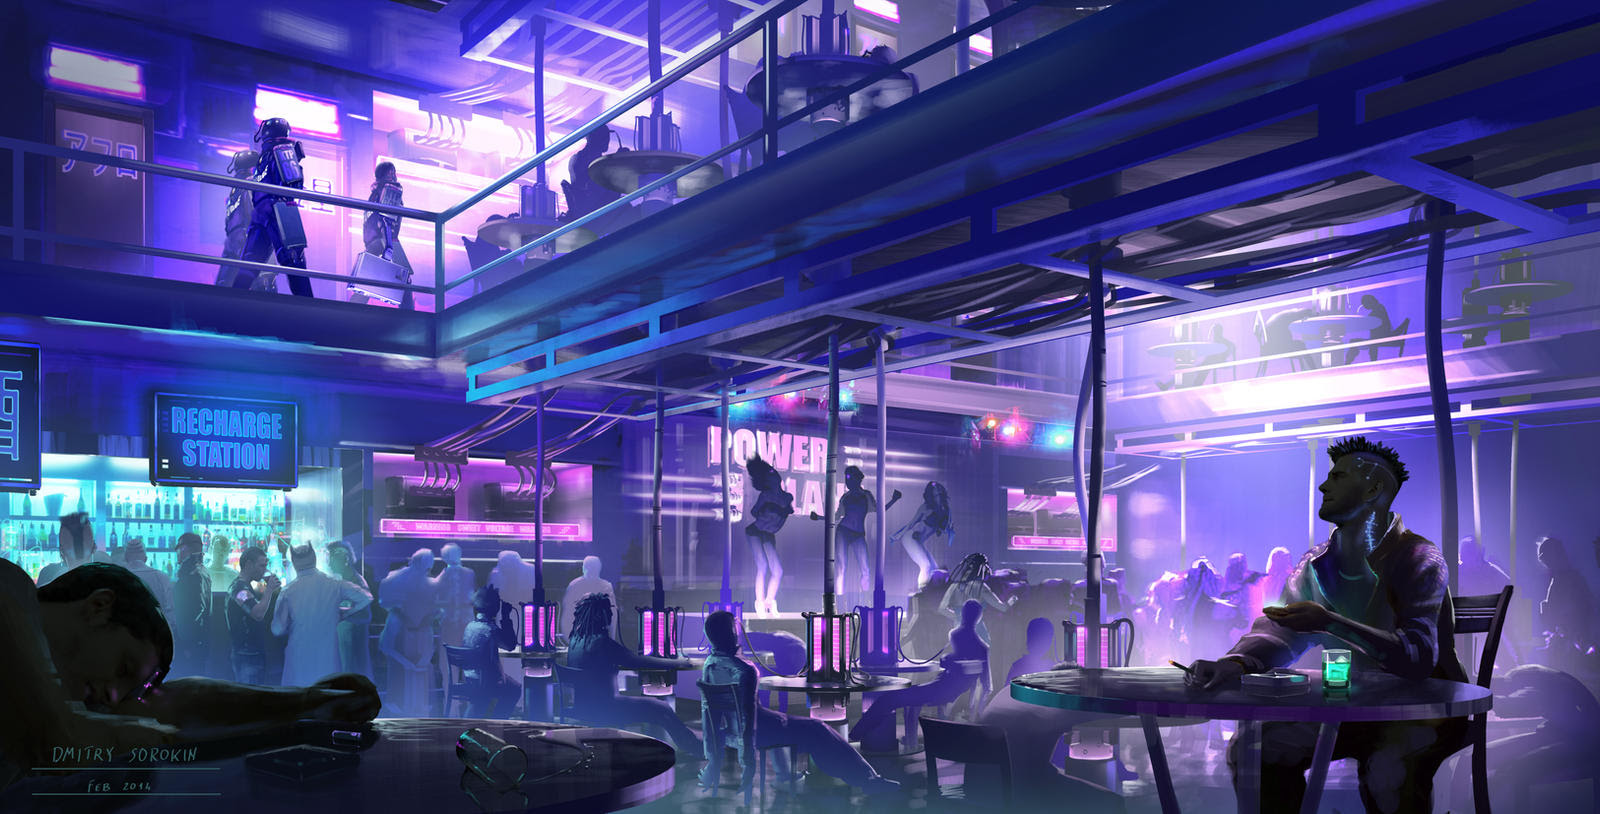 cyberpunk__night_club_by_dsorokin755 d75lf02